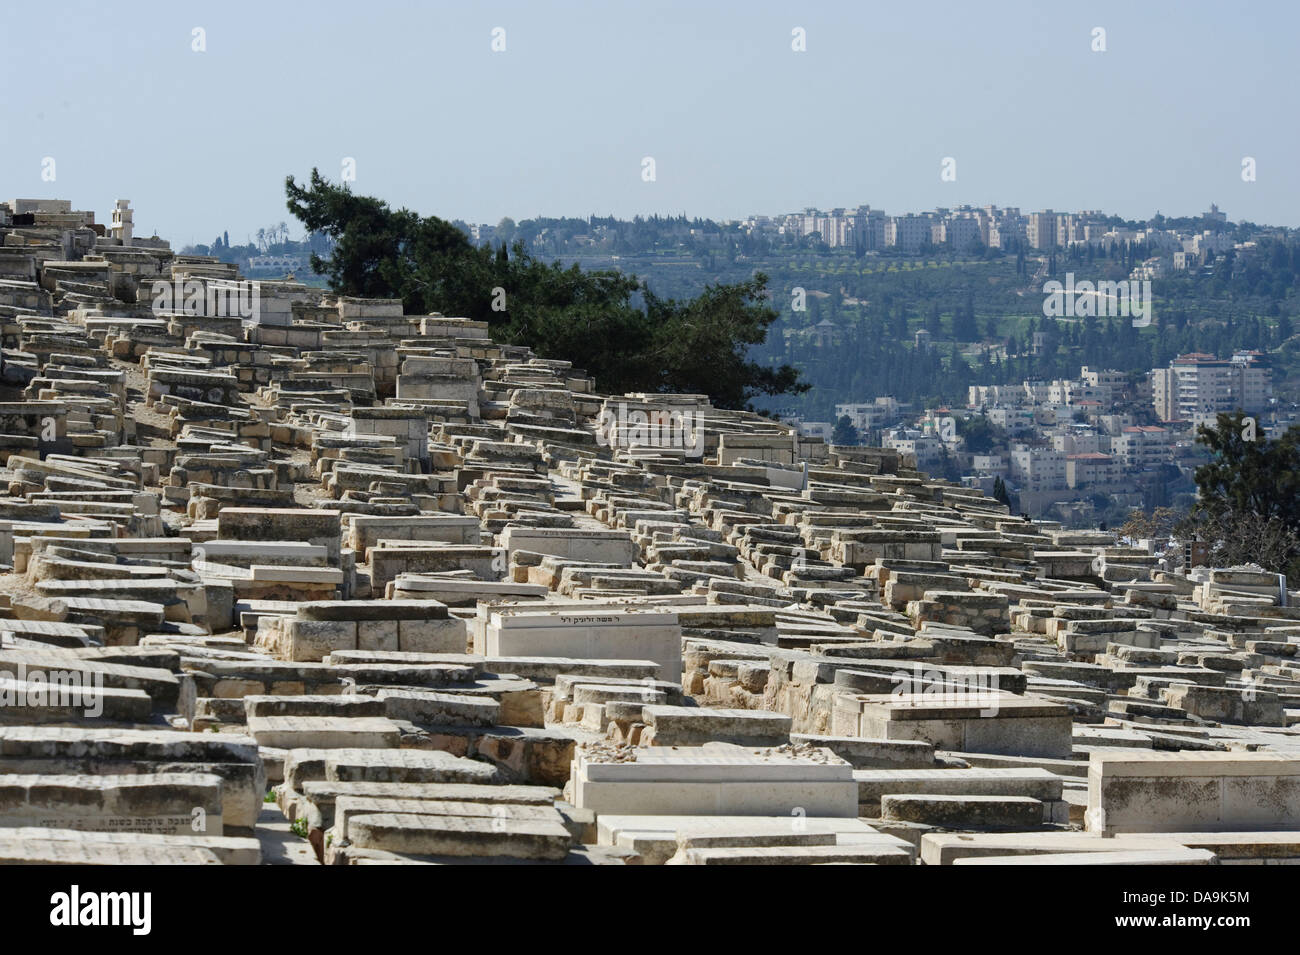 Cemetery, Israel, Jerusalem, Middle East, Near East, Jewish, Mount of Olives, graves, religion, Jew, Jewish, Stock Photo